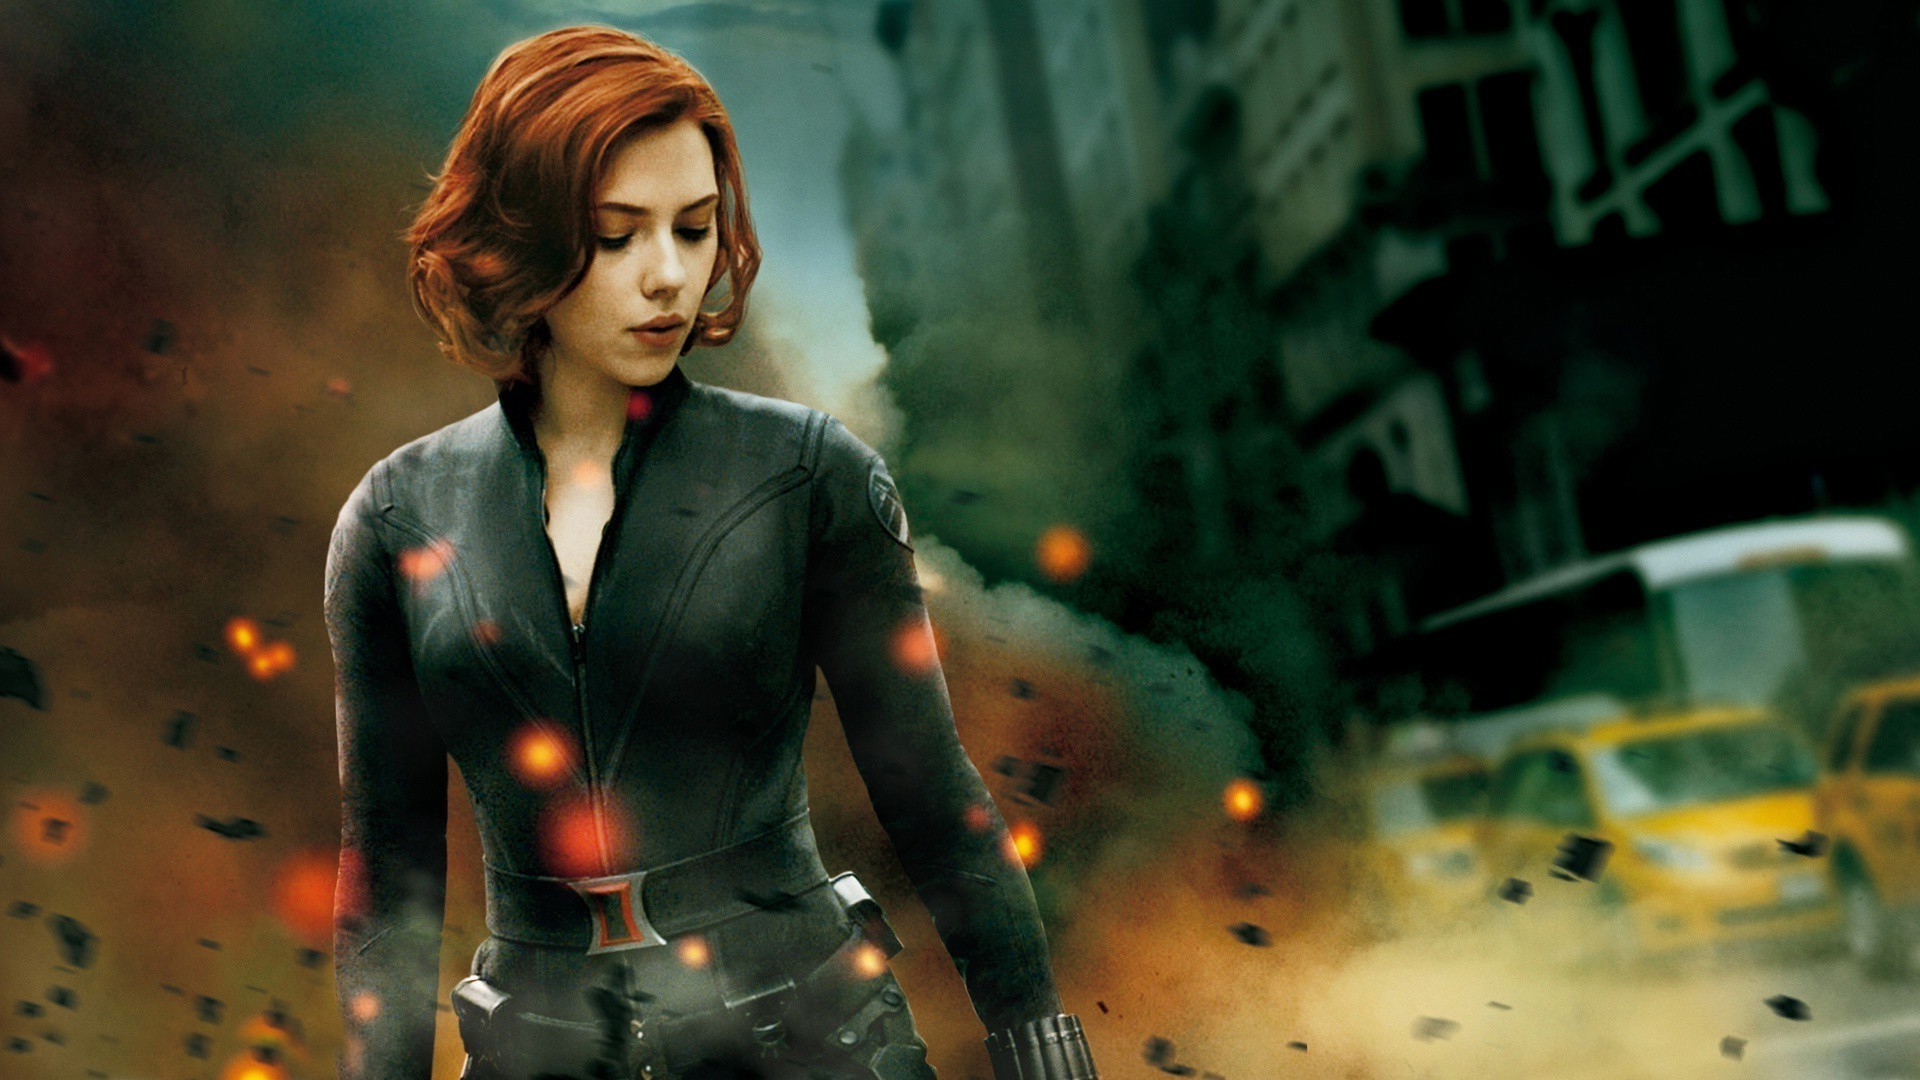 1920x1080 Scarlett Johansson, Black Widow, Marvel Comics, The Avengers, Superheroines  Wallpapers HD / Desktop and Mobile Backgrounds